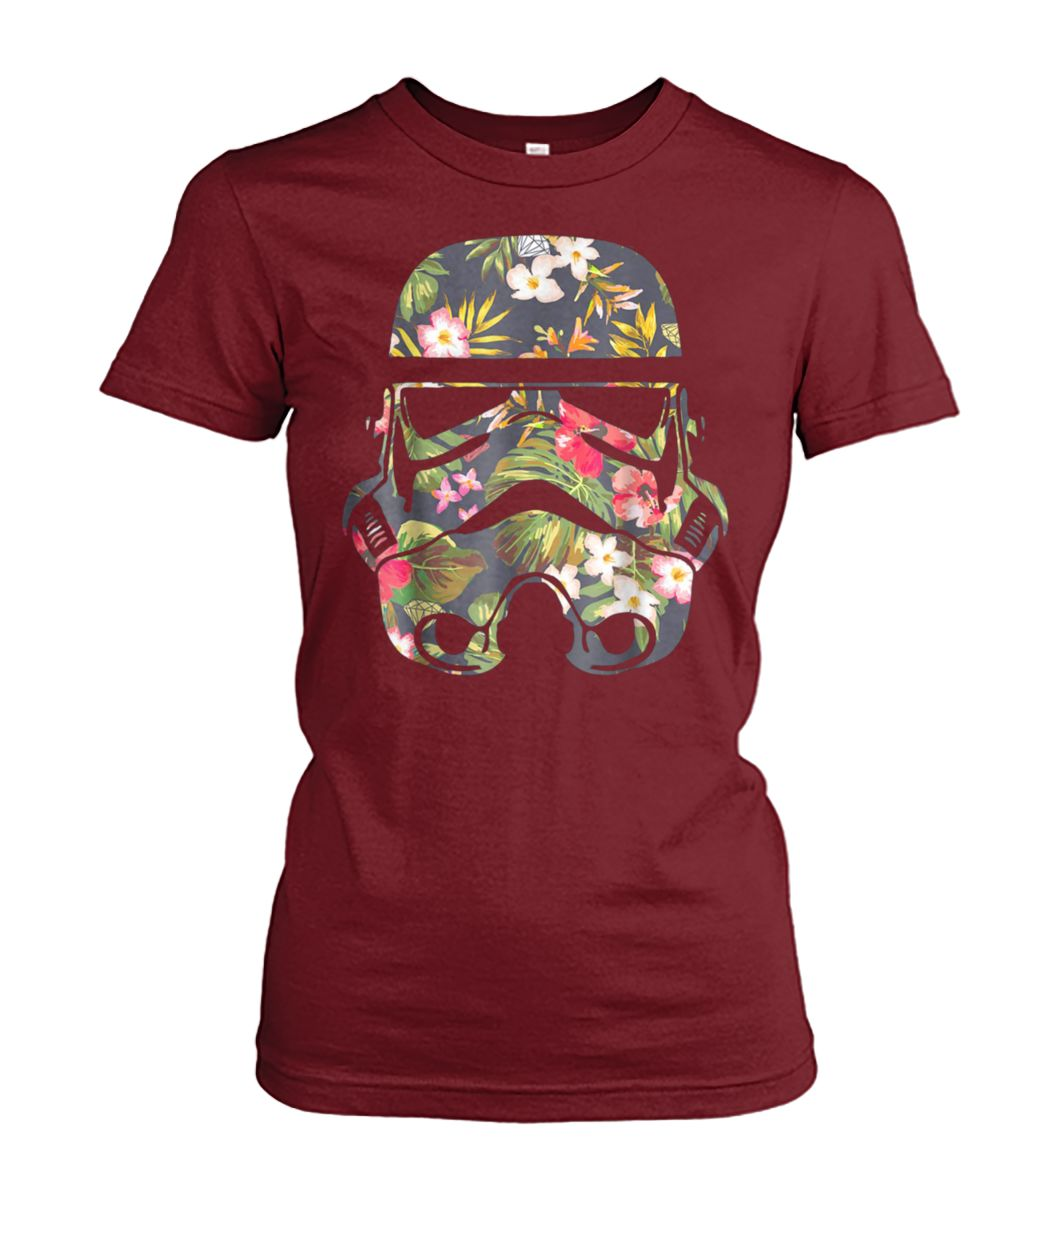 Star wars tropical stormtrooper floral print graphic women's crew tee